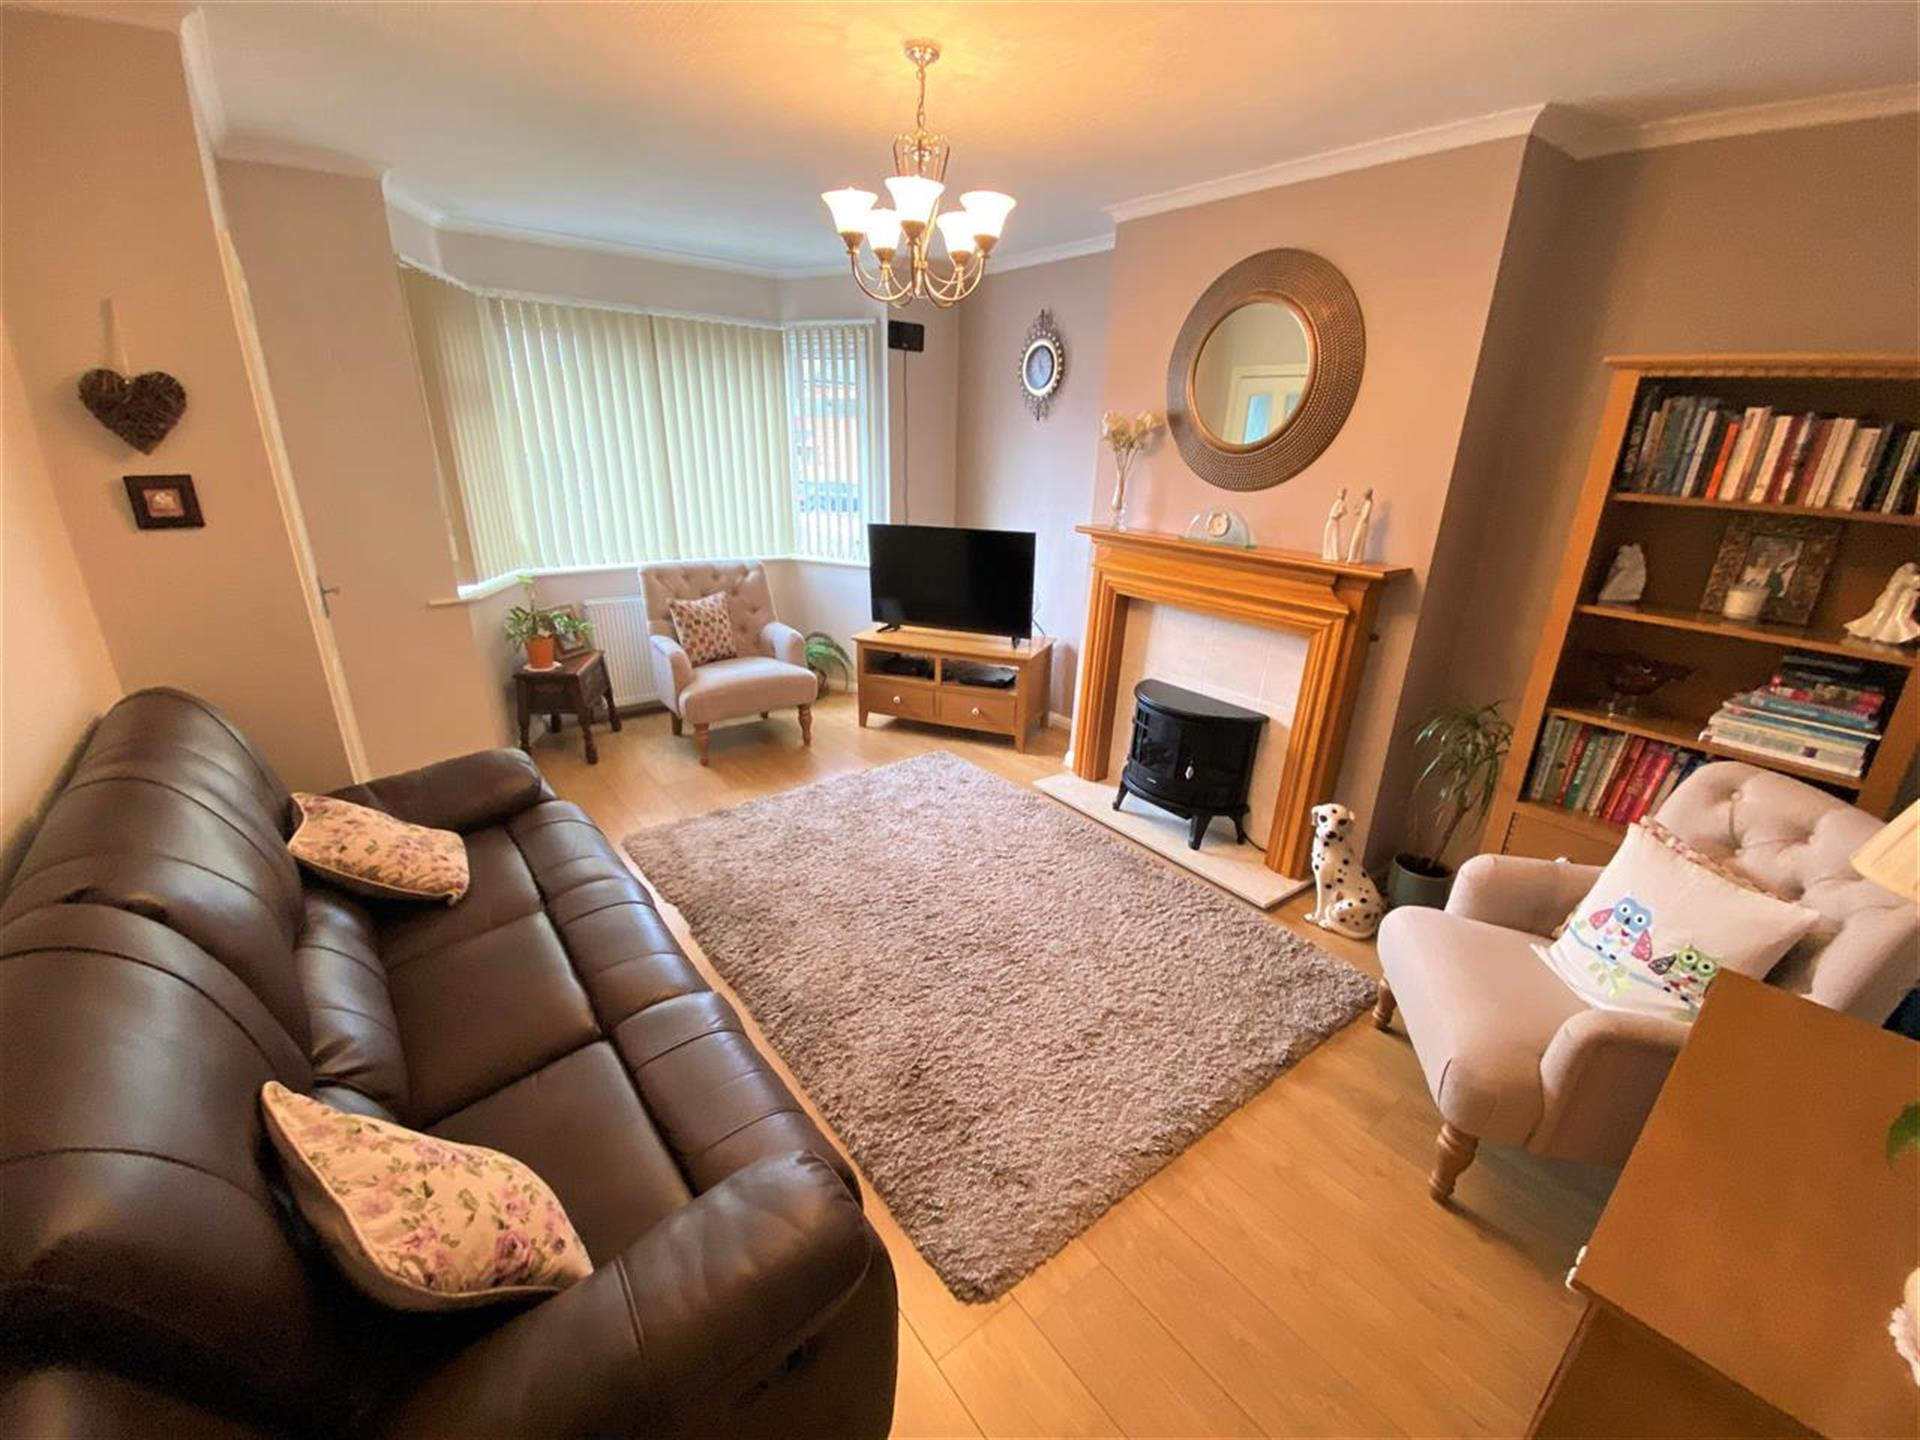 2 Bedroom Terraced House For Sale - Lounge